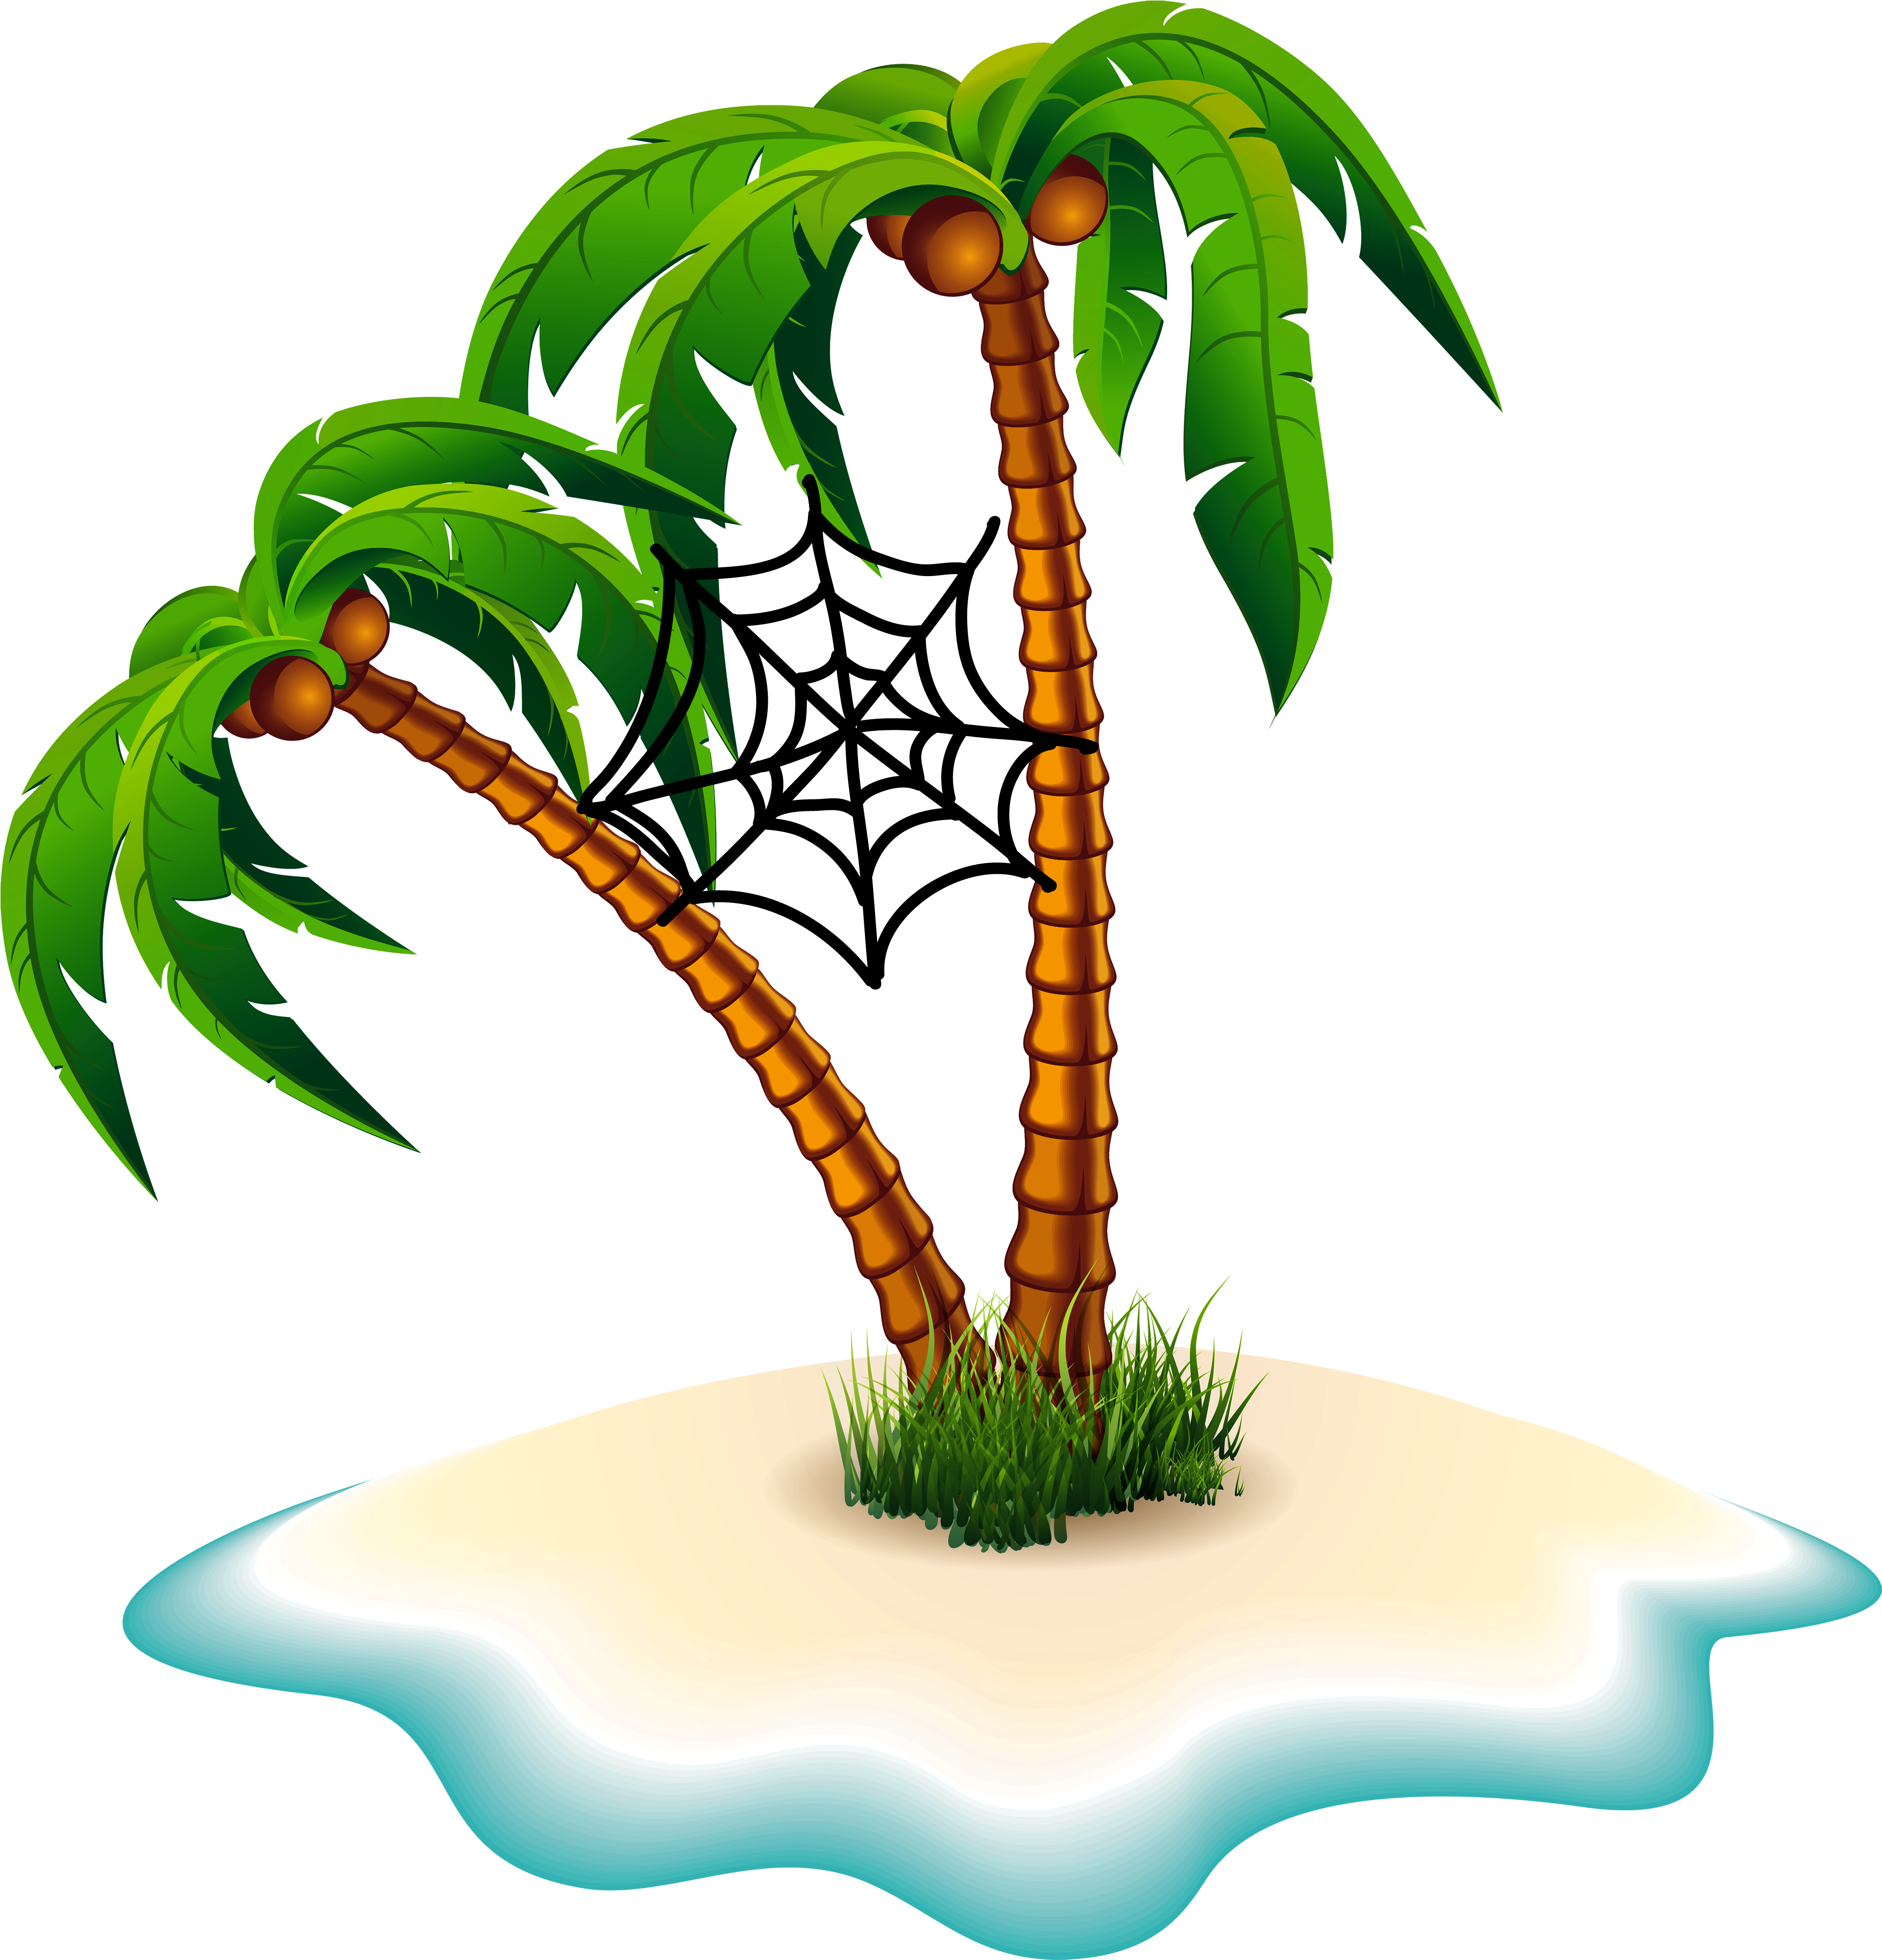 18 trees clipart clipart free stock Palm trees Clip art Portable Network Graphics Transparency Image ... clipart free stock